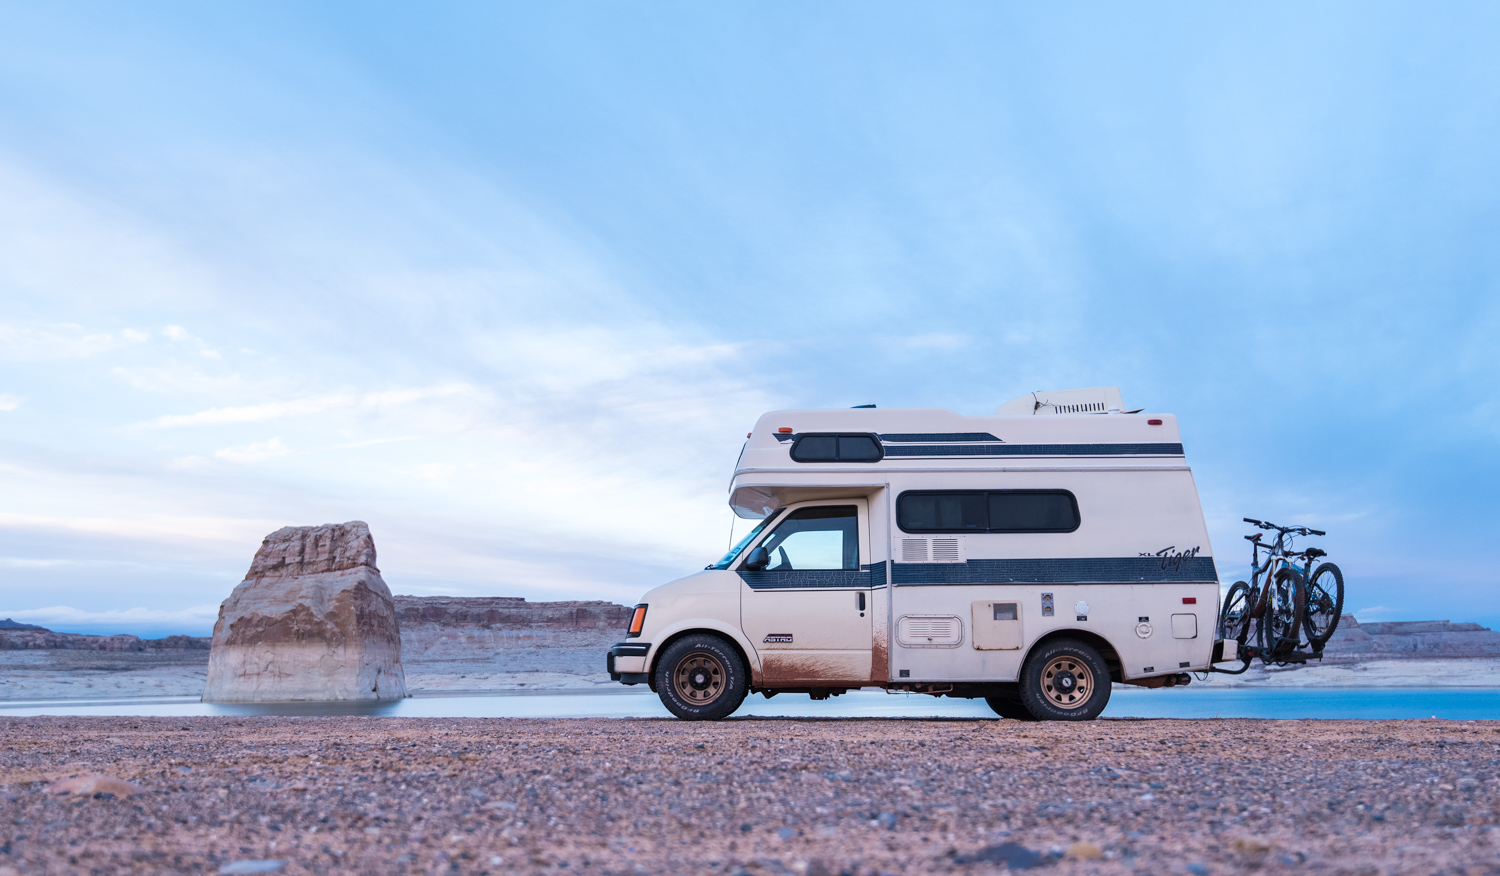 Batteries and Backups: How to Shoot Off the Grid - camper van